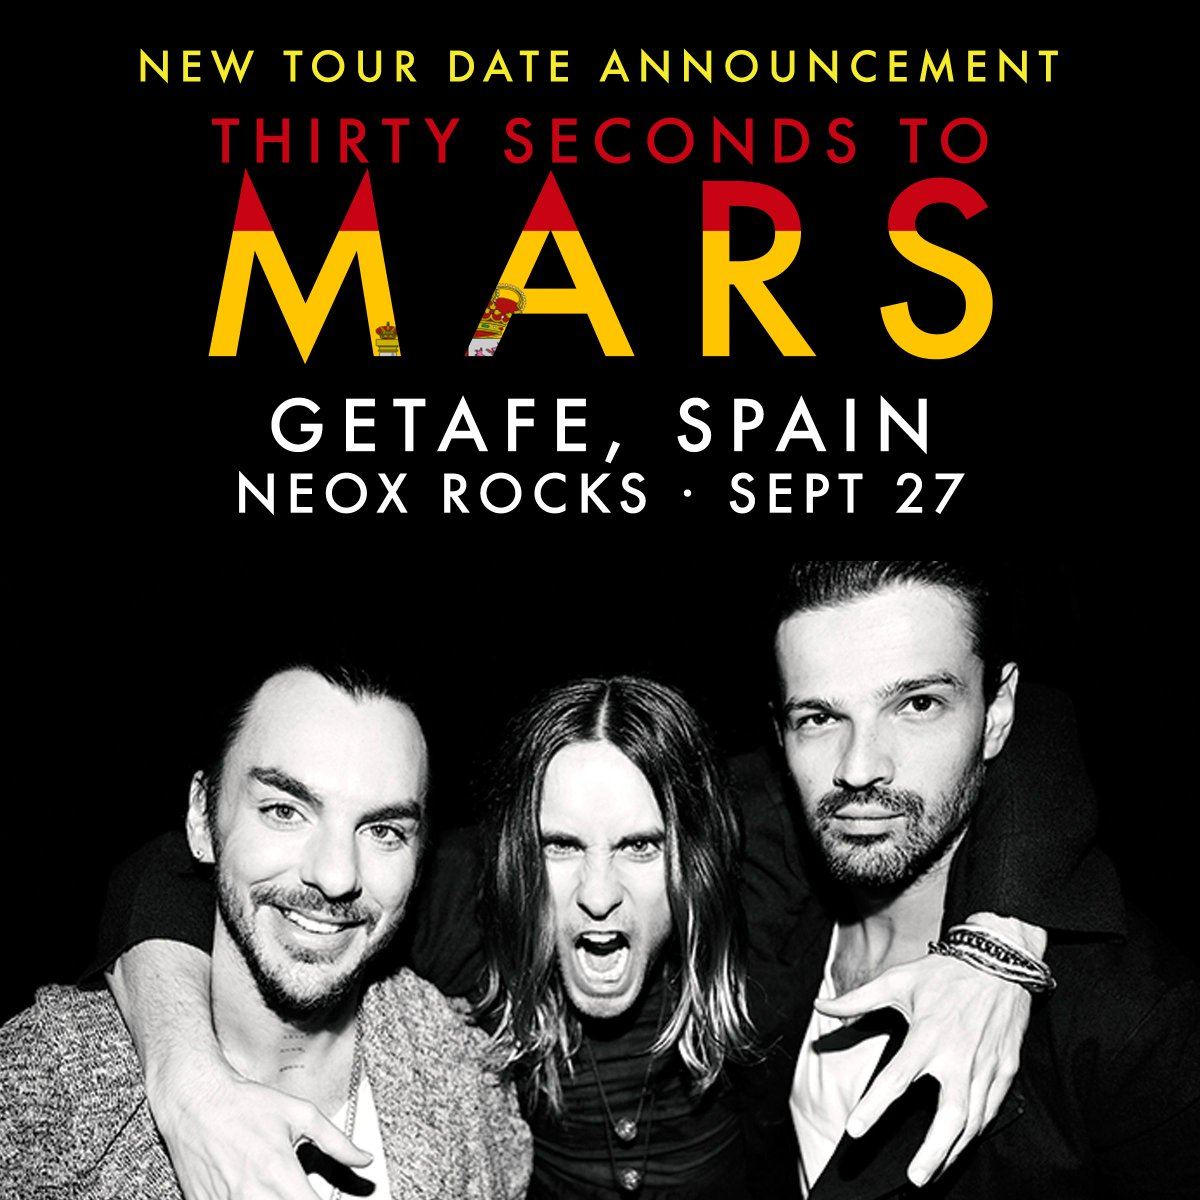 RT @30SECONDSTOMARS: Are you ready, Spain? → Tix: http://t.co/wQlIoIe6Qy • VIP: http://t.co/5h2GNPjb1o http://t.co/u0hdf9gyqf